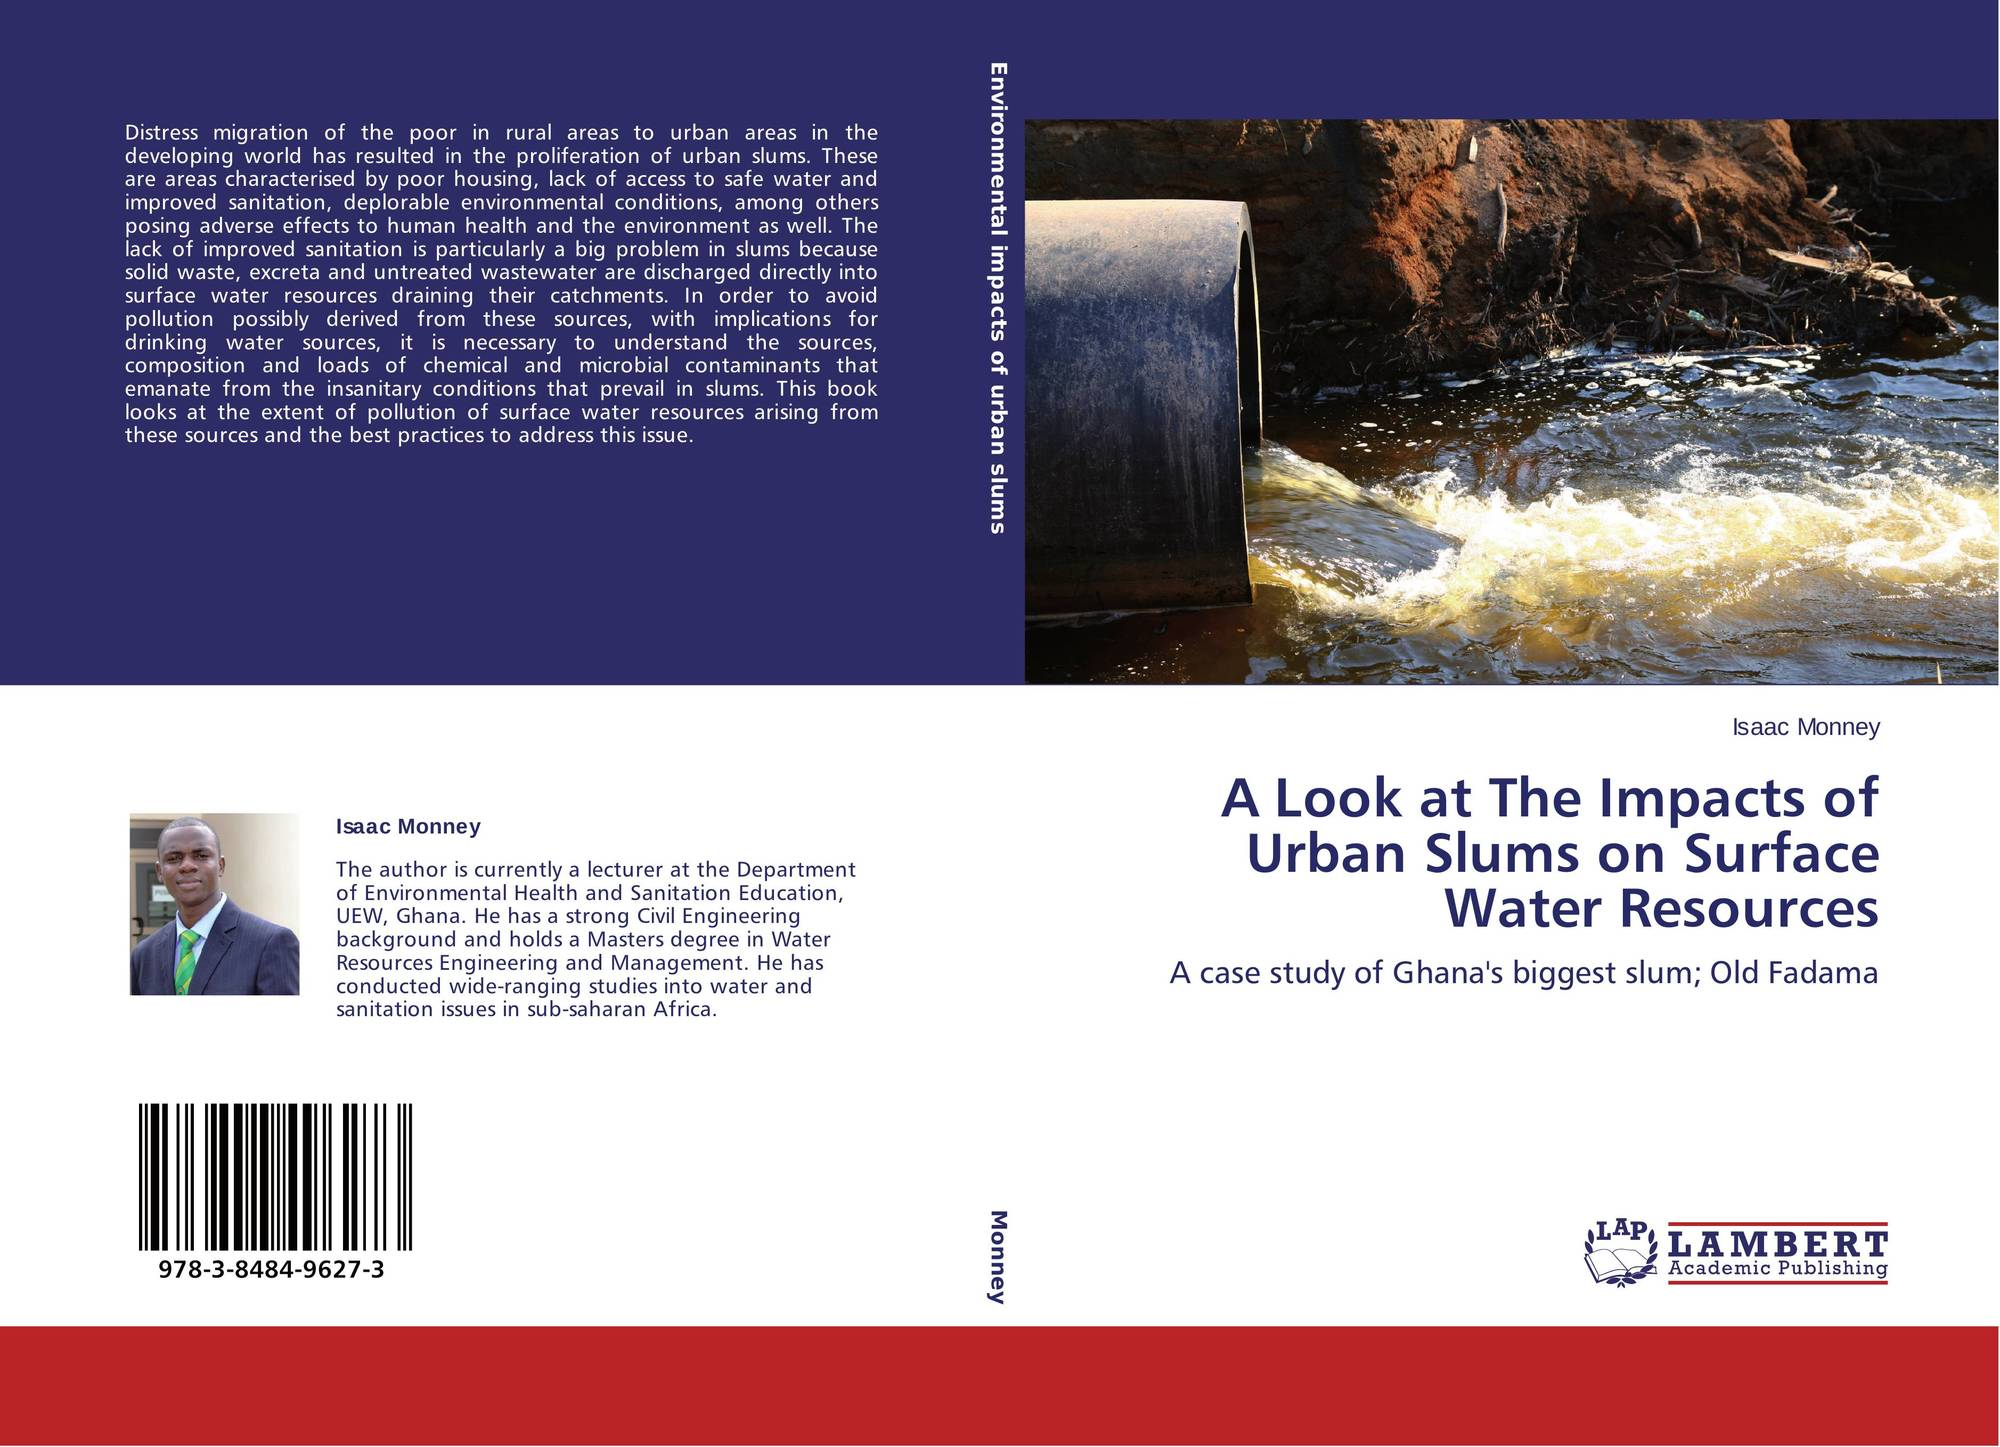 impact on water resources due to urbanization. a case study of montserrado county, liberia A case study of urbanization in india and metropolitan cities have been carried out leading to to the environment due to urbanization and preventive measures to keep a check on them of the pertinent impacts on the physical environment but it has failed to indicate the impact of urbanization on culture and impact of climate change on hydrology and water resources and its mitigative measures.